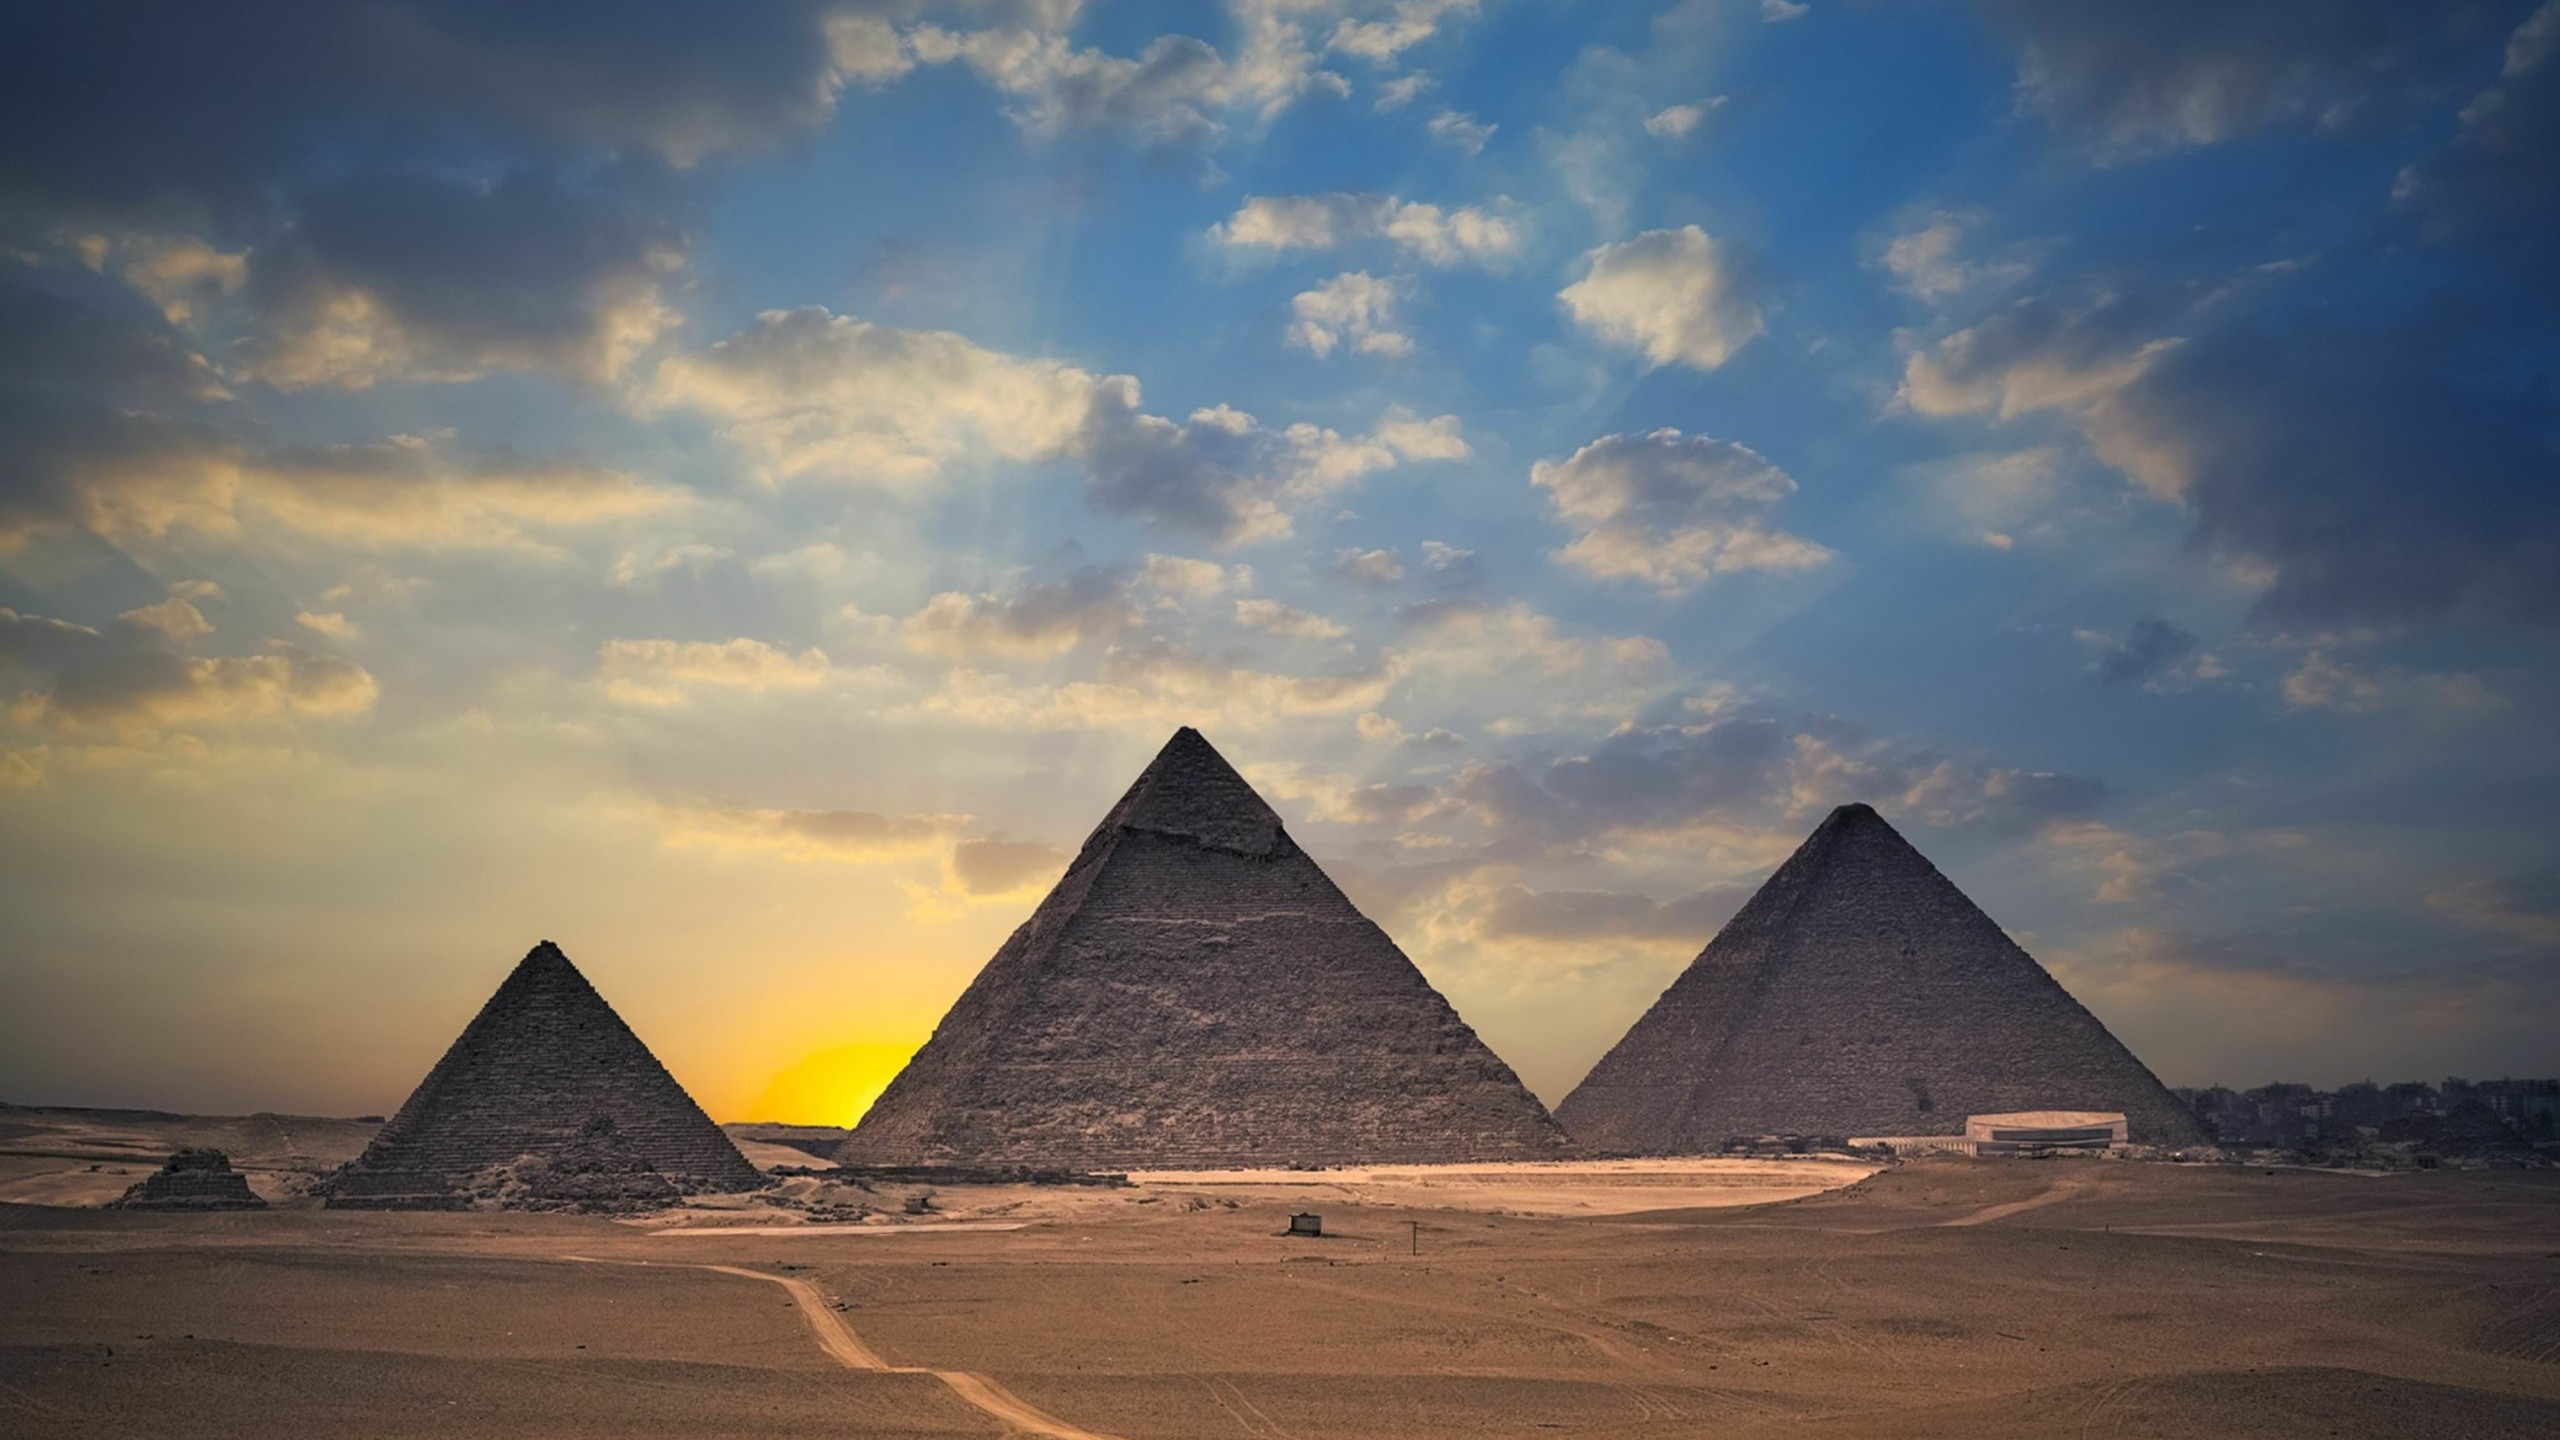 The Great Pyramids of Giza Wallpaper for Social Media YouTube Channel Art